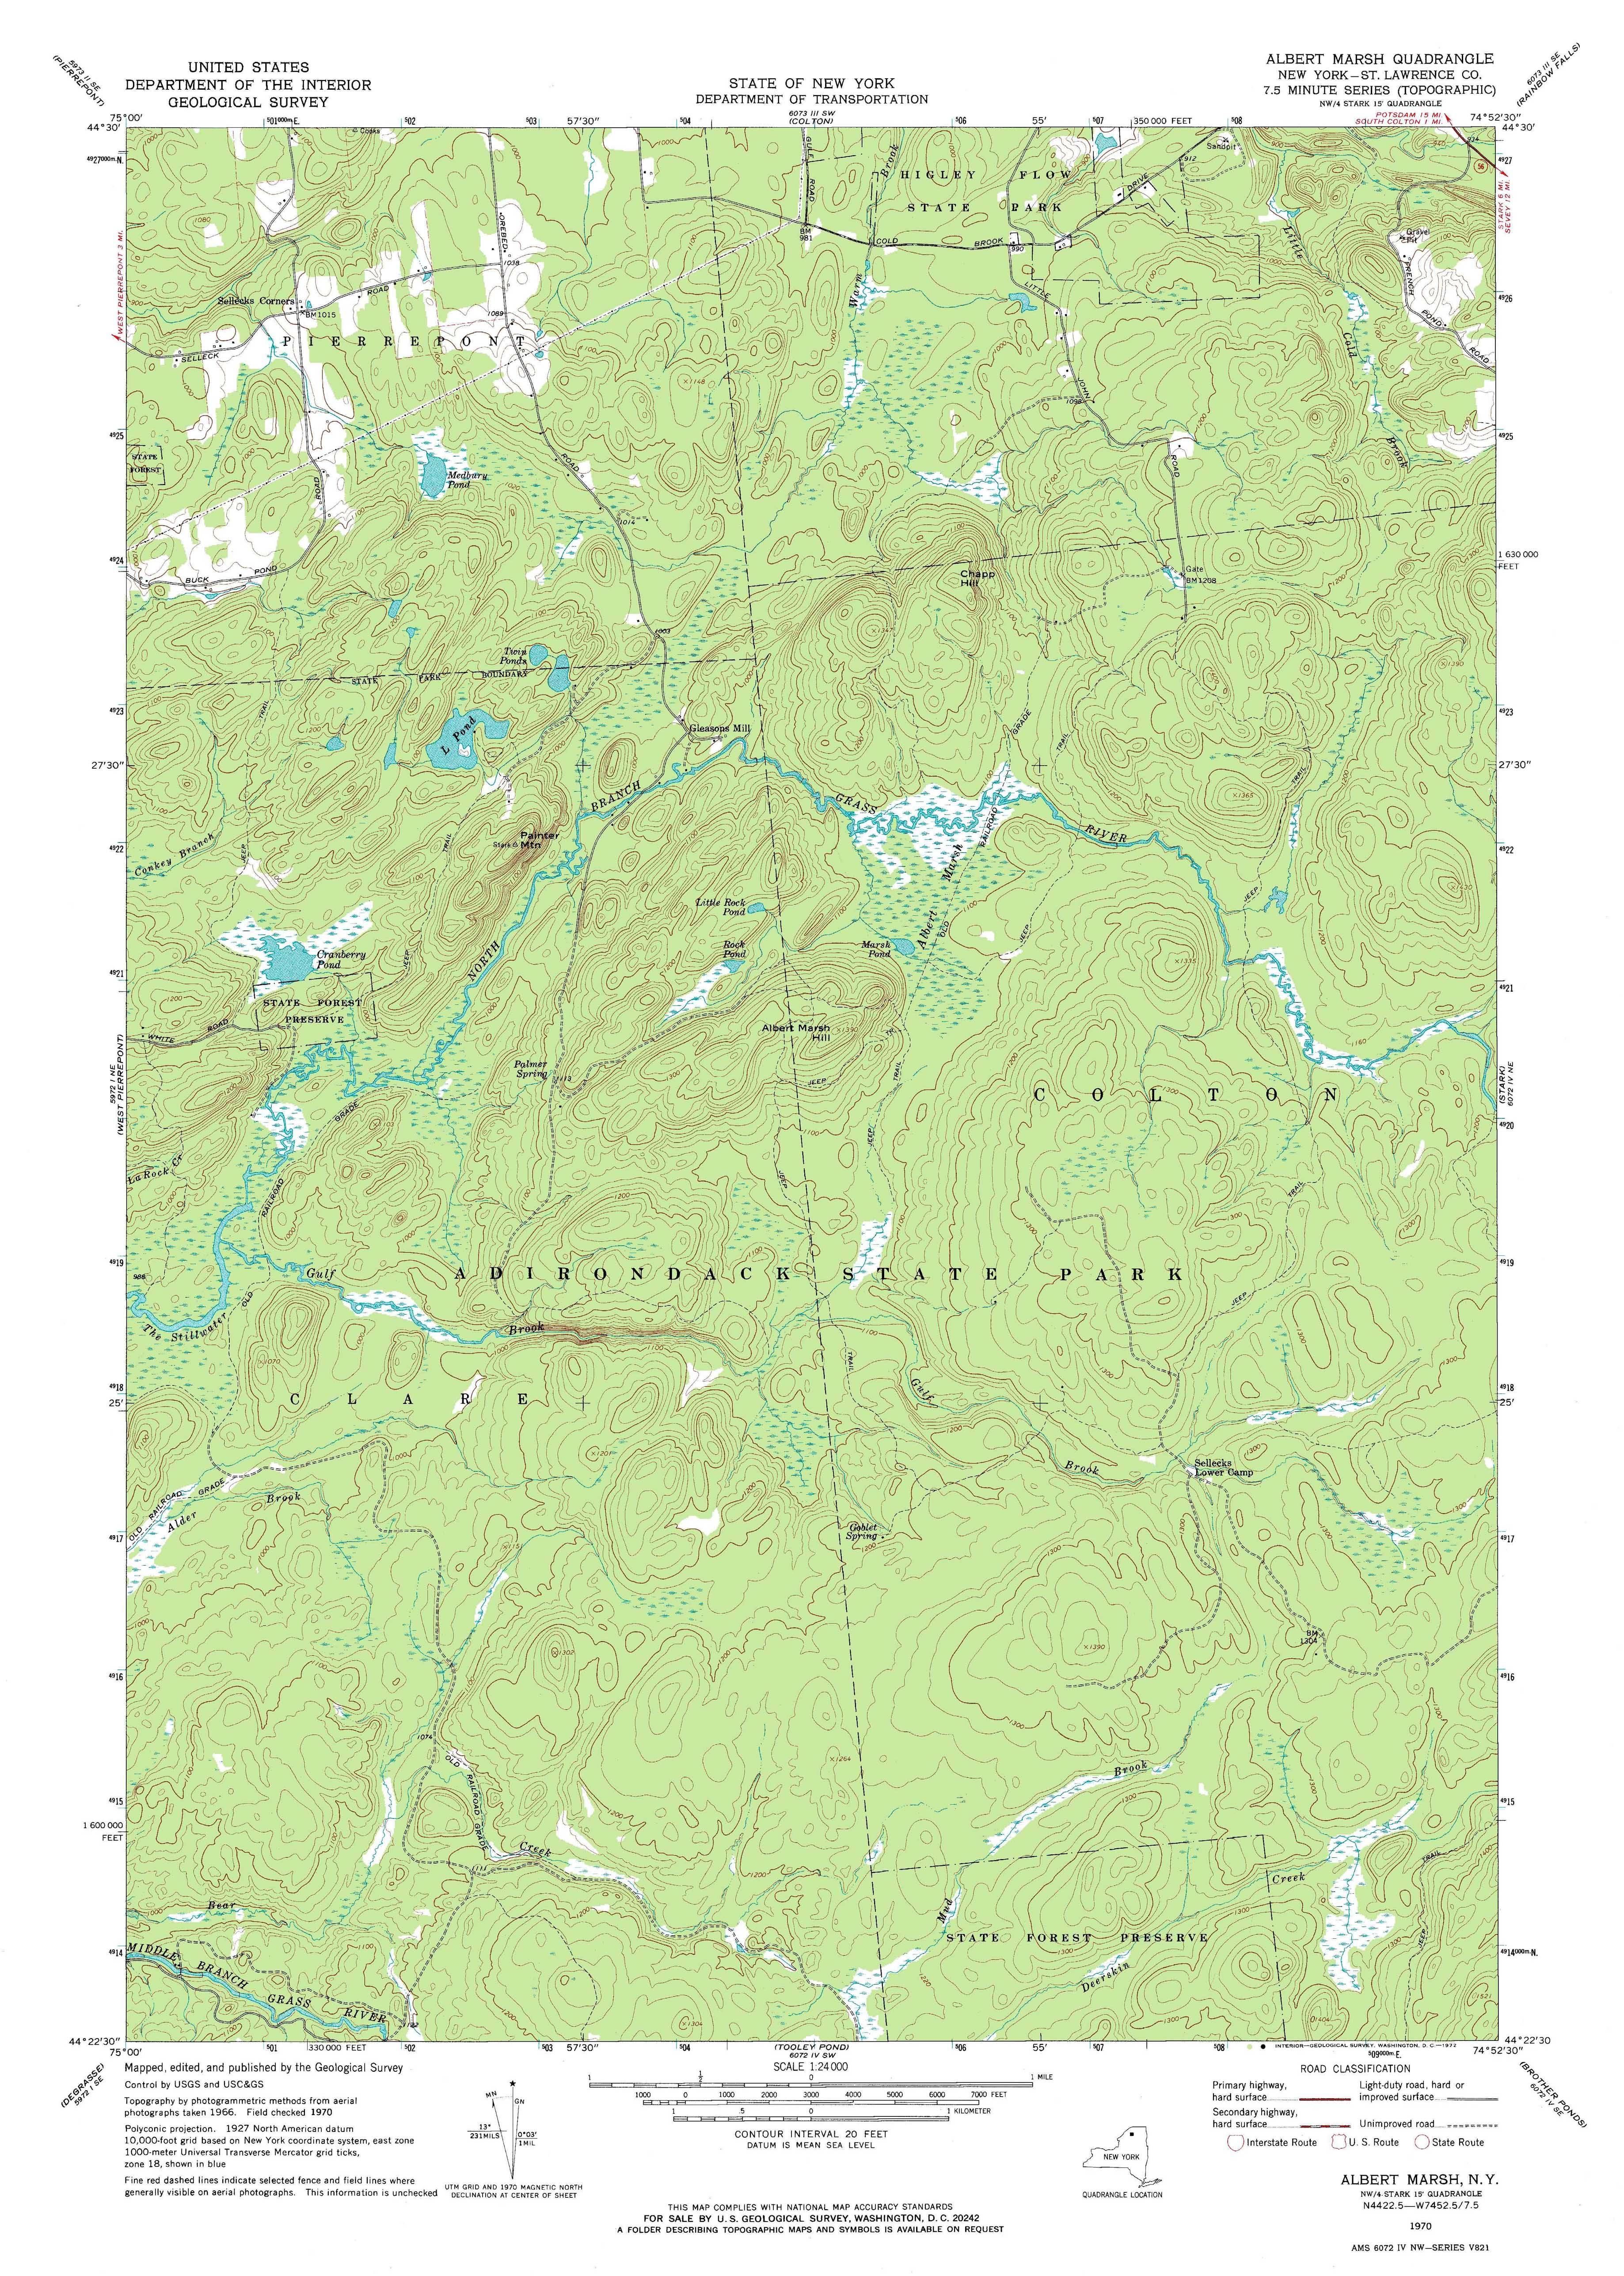 New York Topo Maps Minute Topographic Maps Scale - Topographic map free download